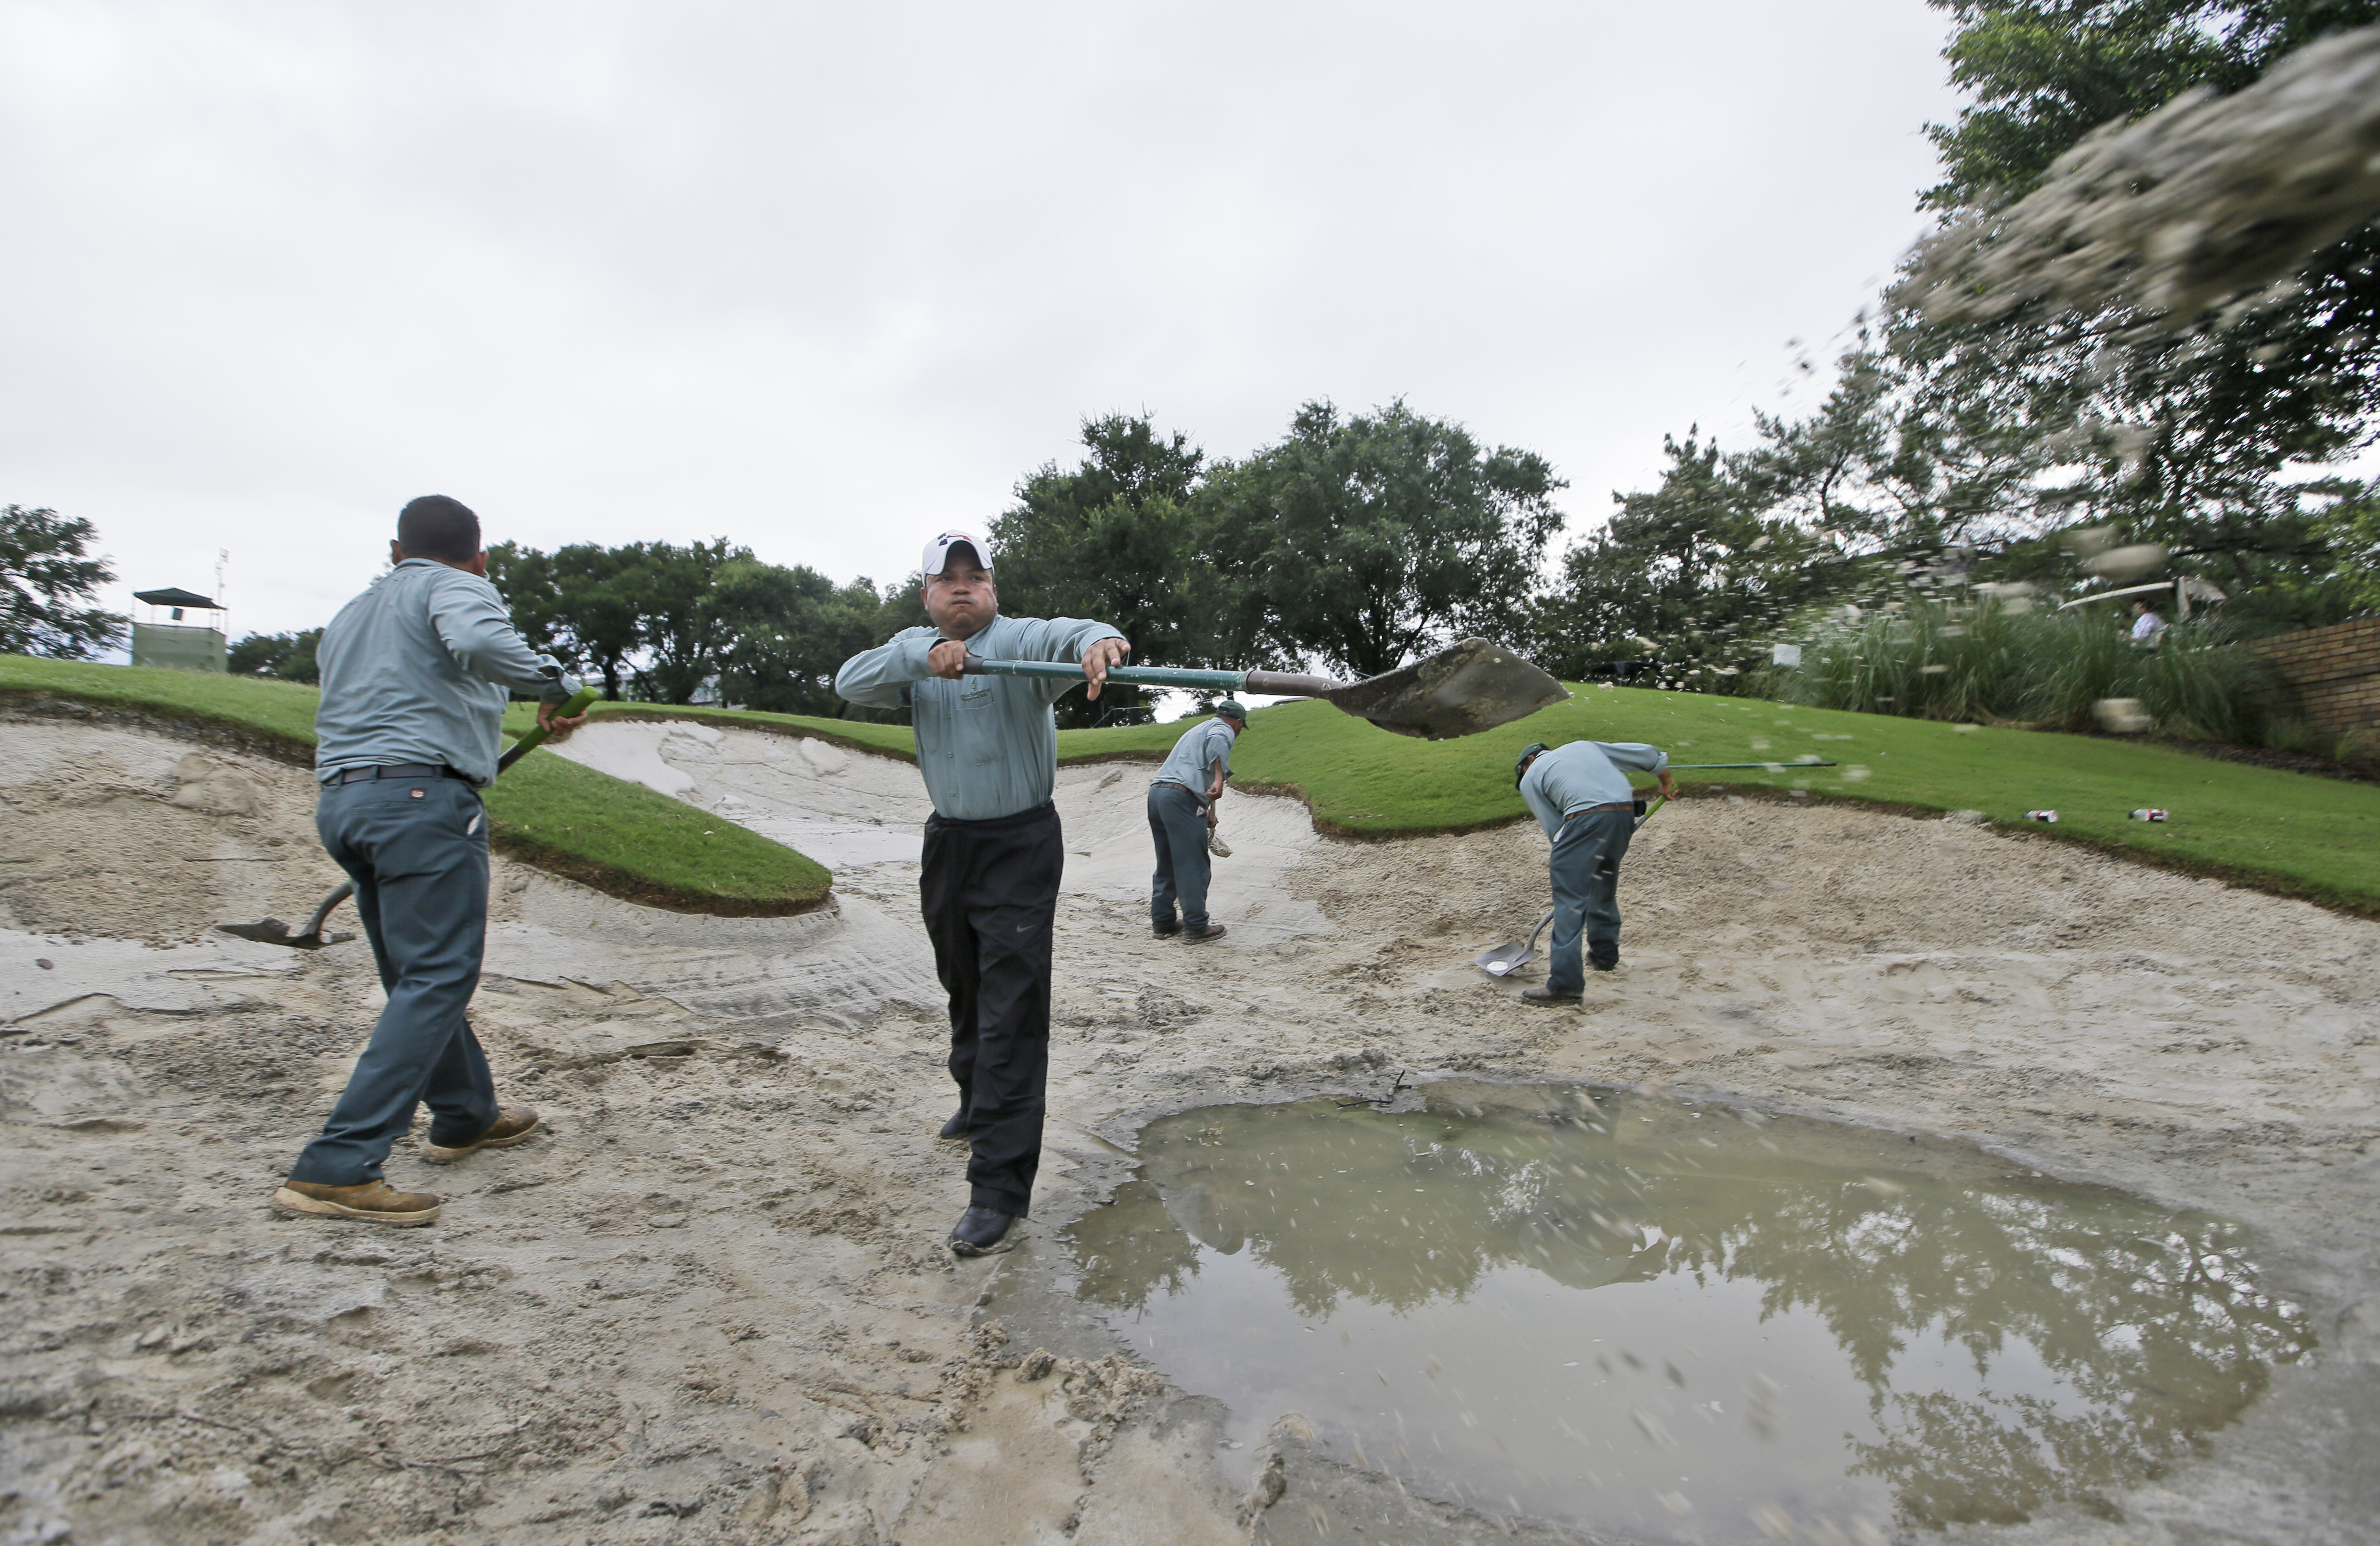 Grounds keepers work to repair a sand trap on the ninth green before the start of the second round of the Byron Nelson golf tournament, Friday, May 29, 2015, in Irving, Texas. Heavy overnight rains delayed the start of play. (AP Photo/LM Otero)